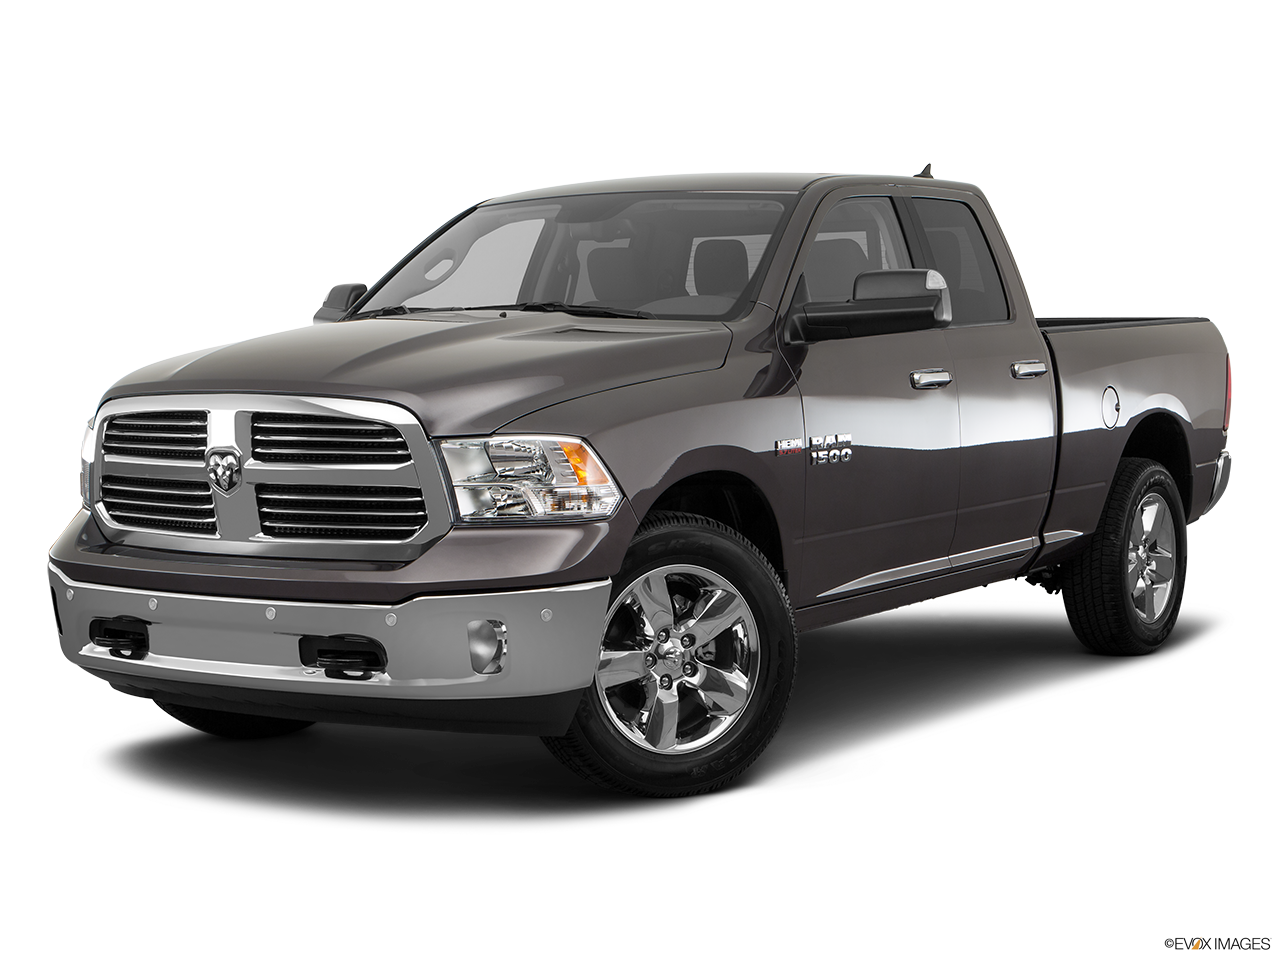 Test Drive A 2017 RAM 1500 at Arrigo Dodge Chrysler Jeep Ram Ft. Pierce in Fort Pierce